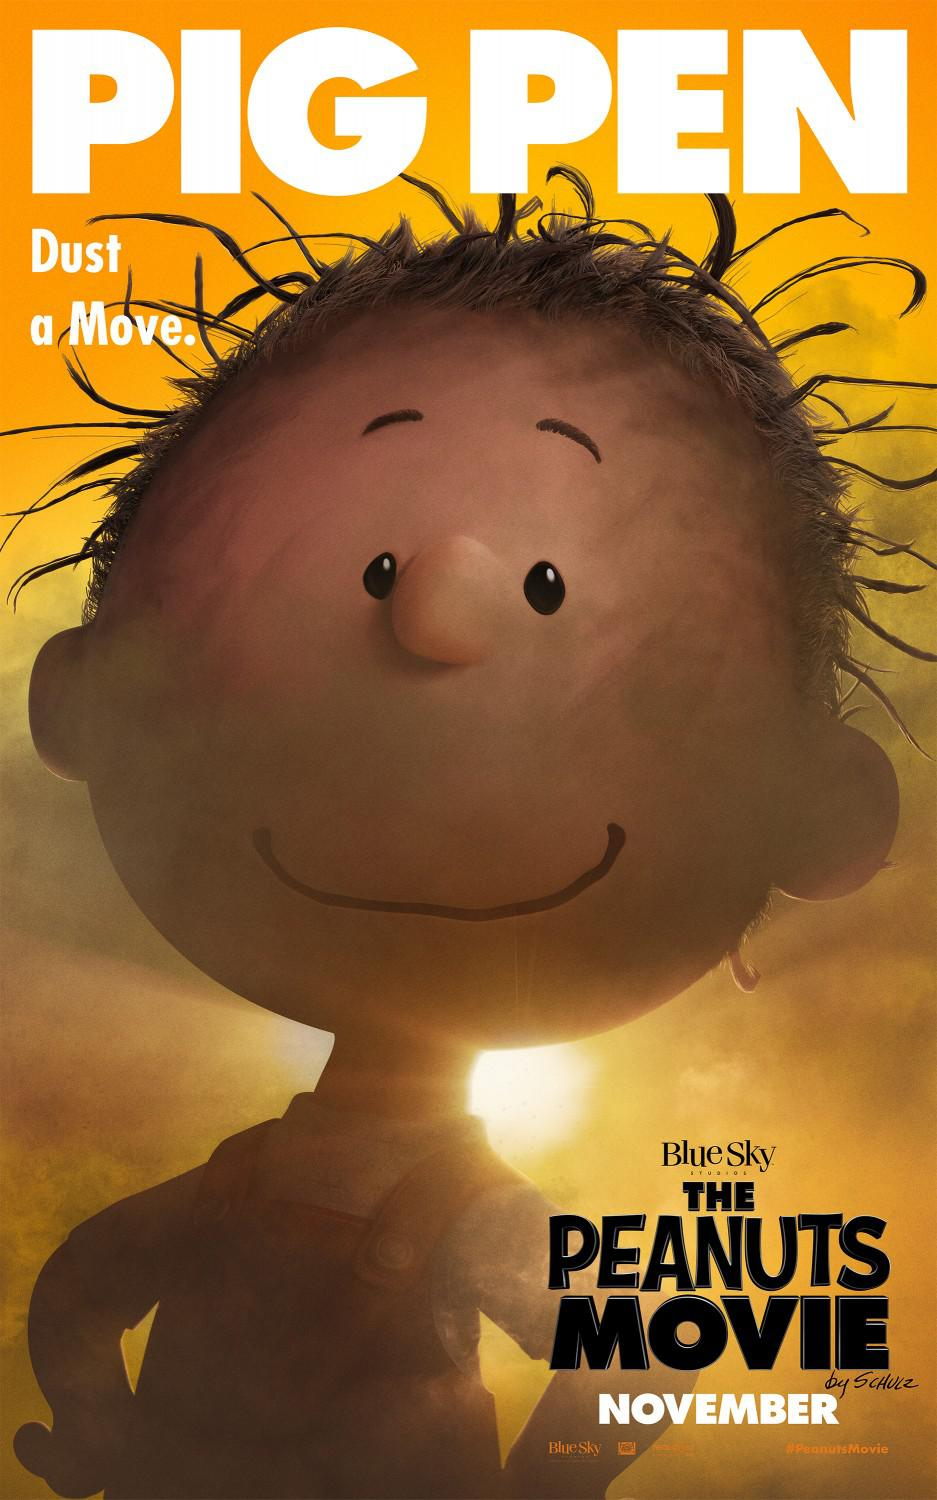 Snoopy and Charlie Brown the peanuts movie - Pig Pen